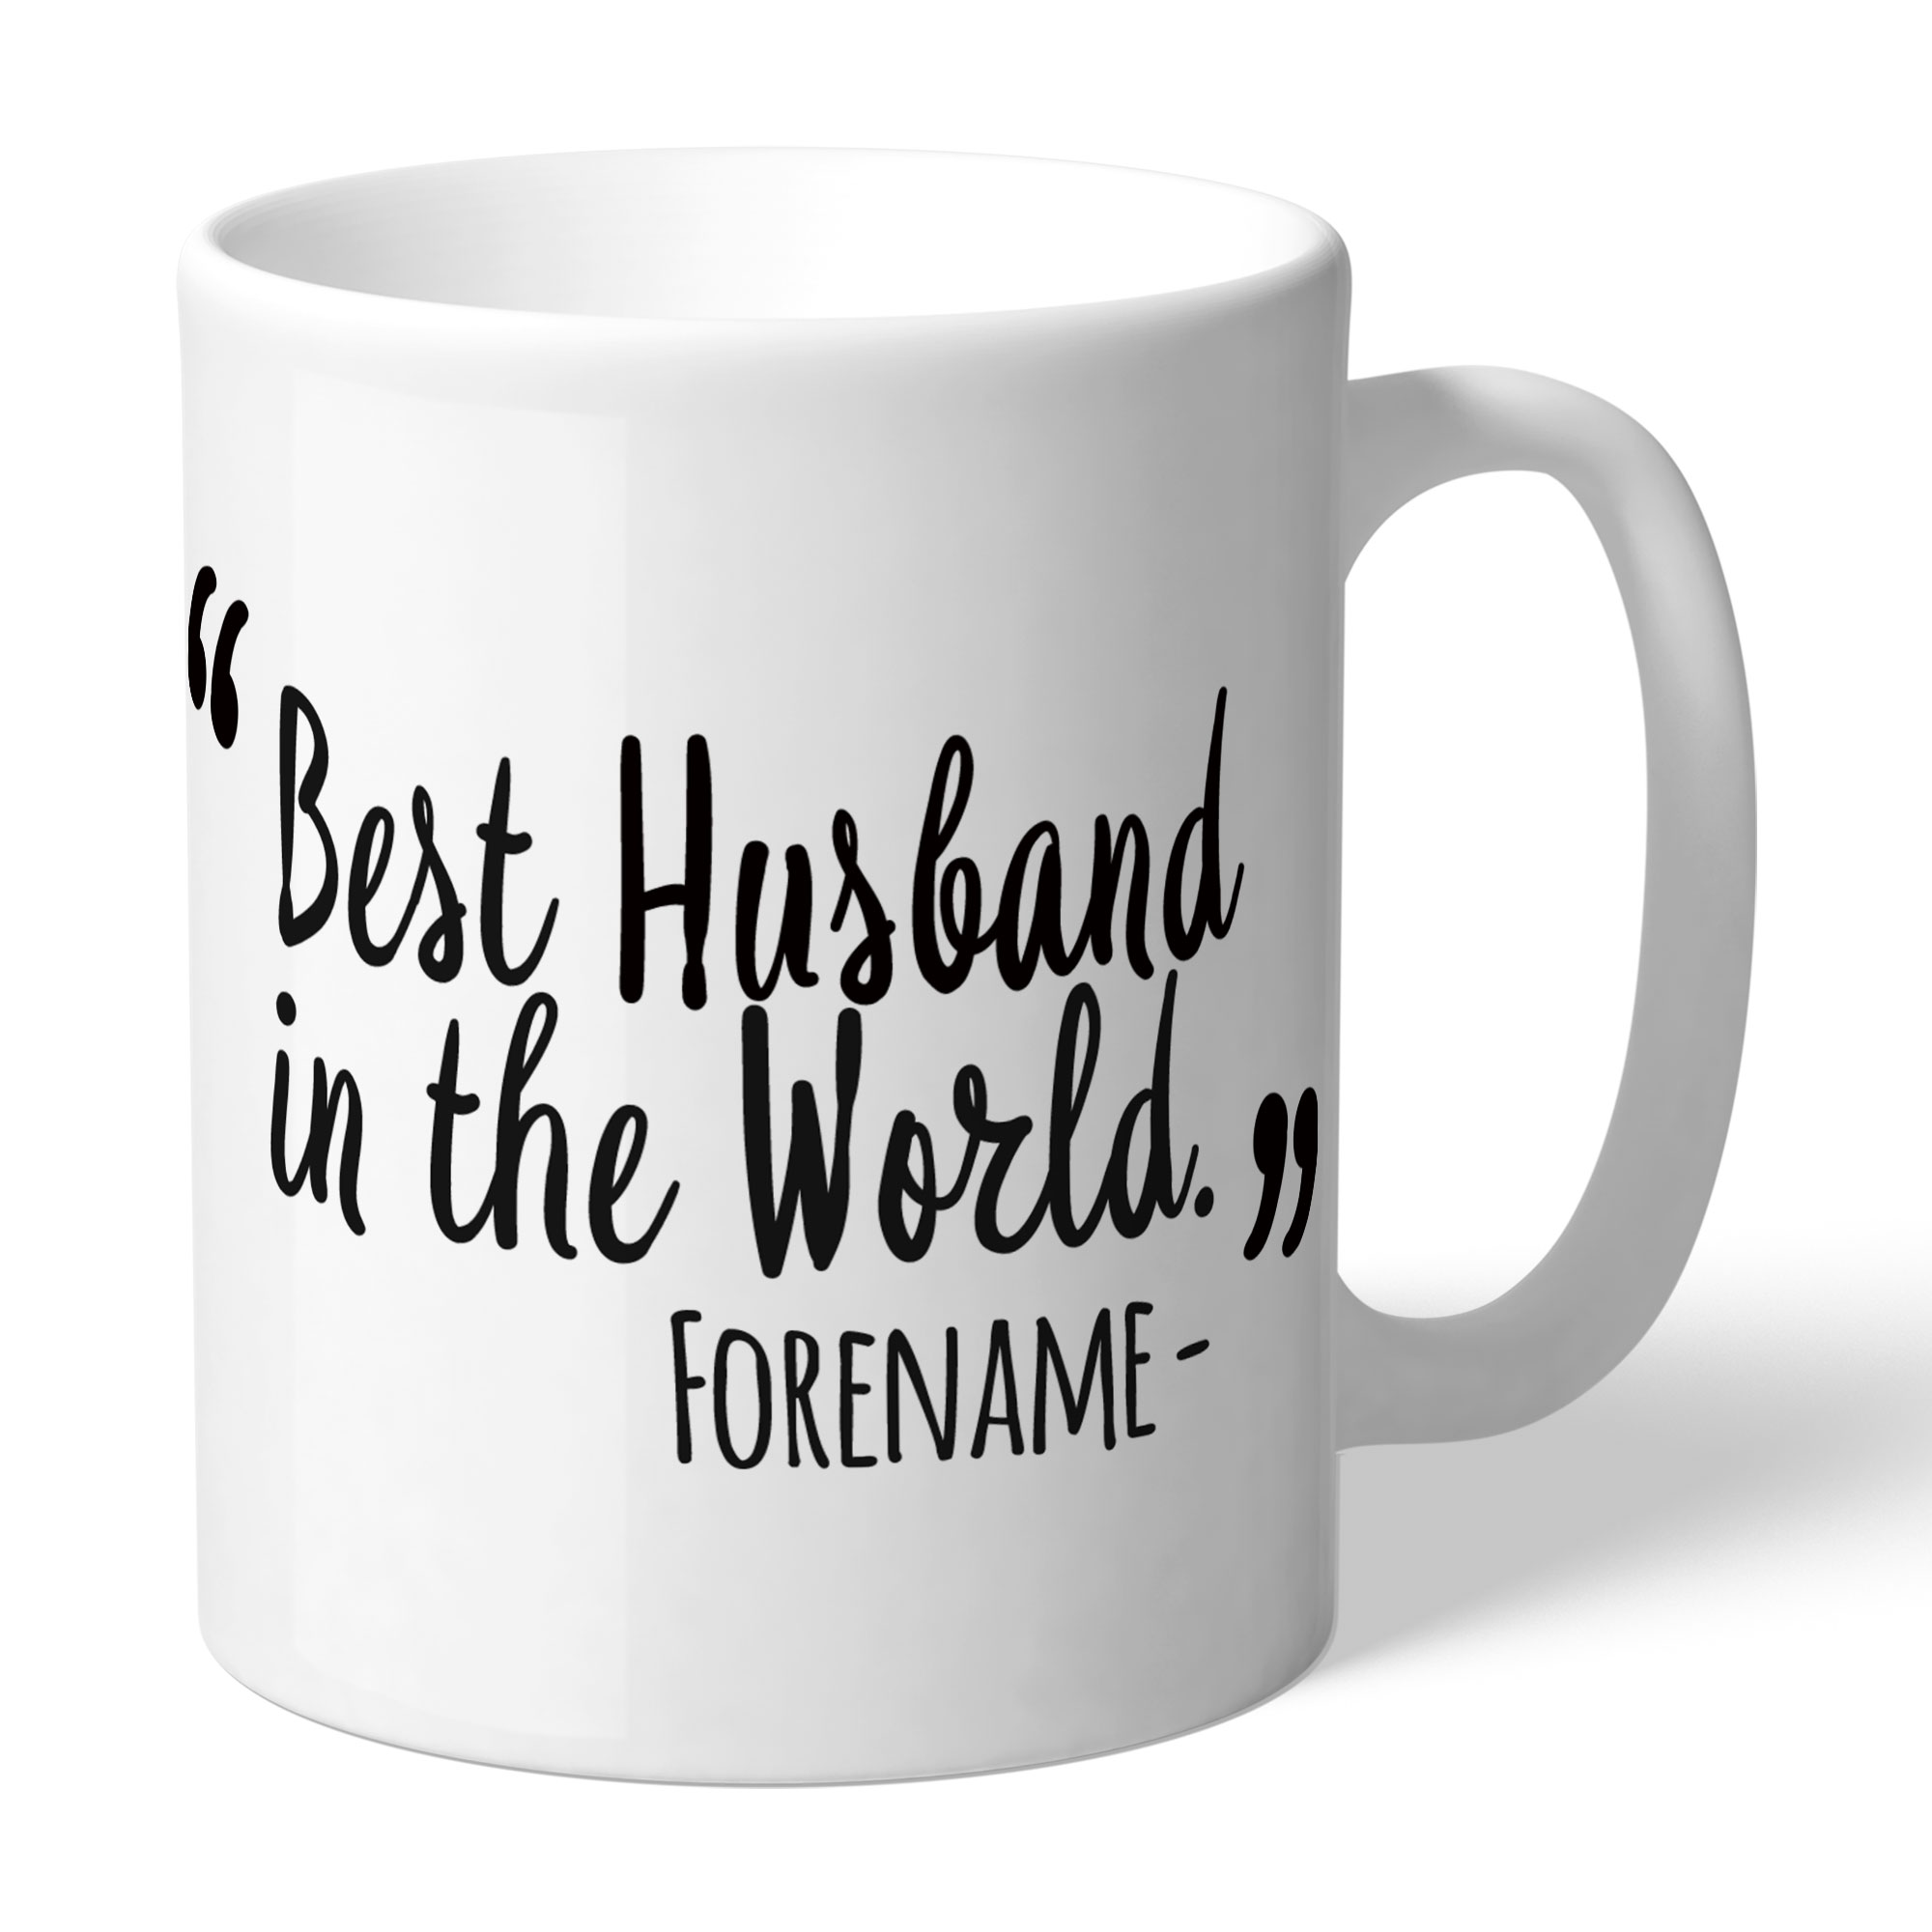 Swansea City AFC Best Husband In The World Mug